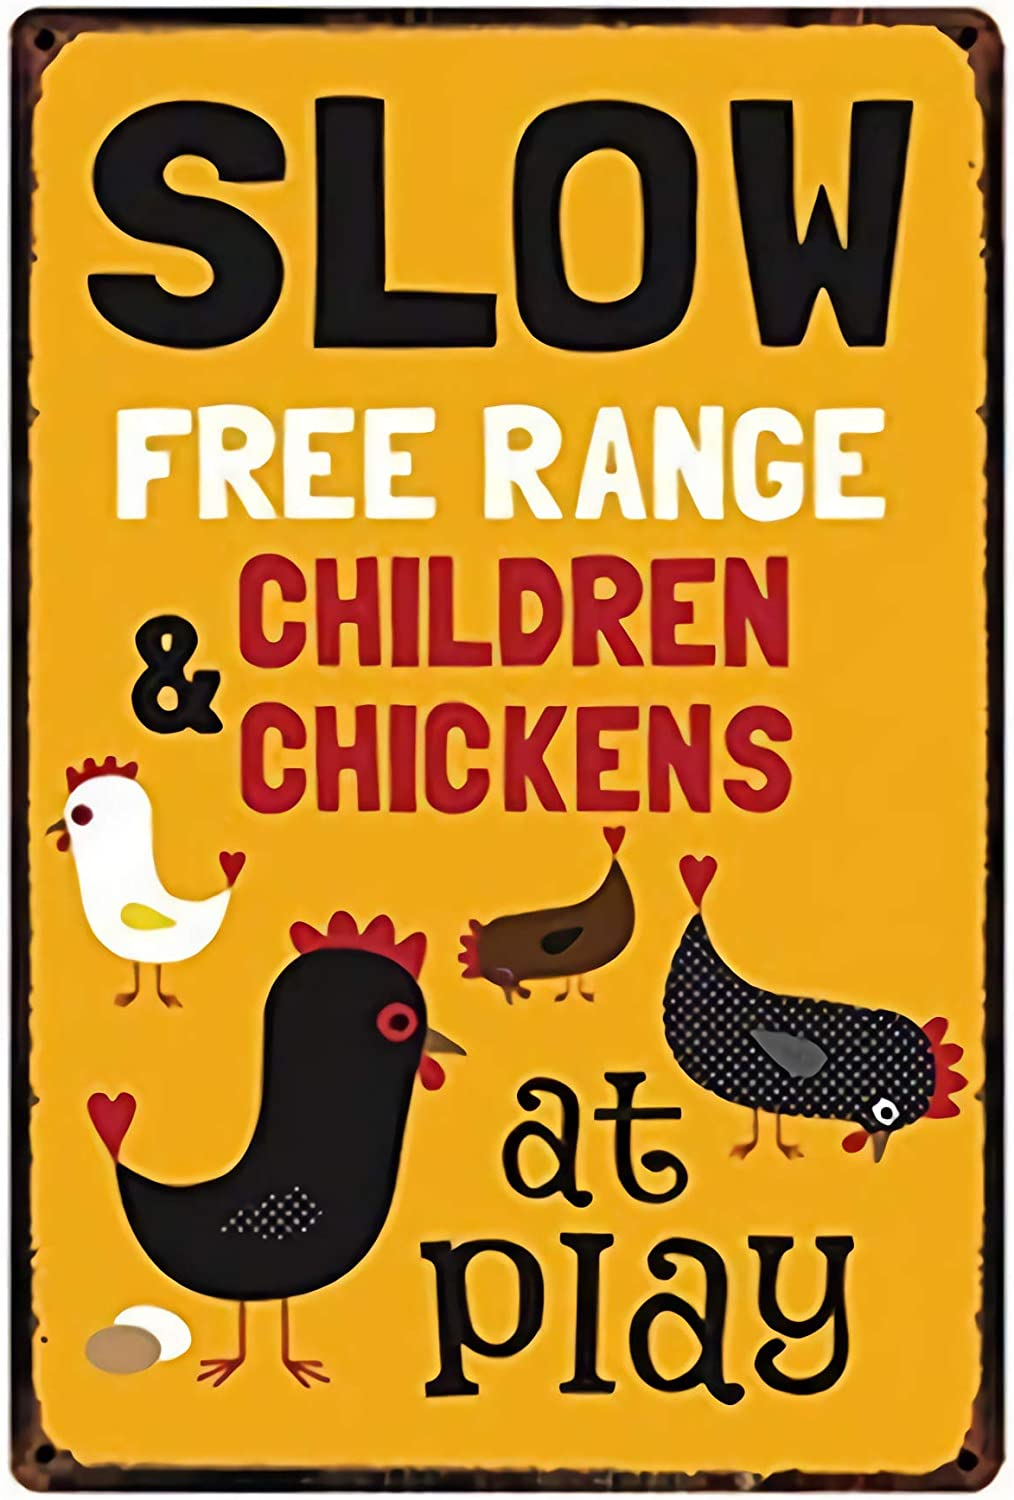 Slow Free Range Children&Chickens at Play Metal Tin Sign 8x12inch Home Kitchen Bar Pub Farm Wall Decor